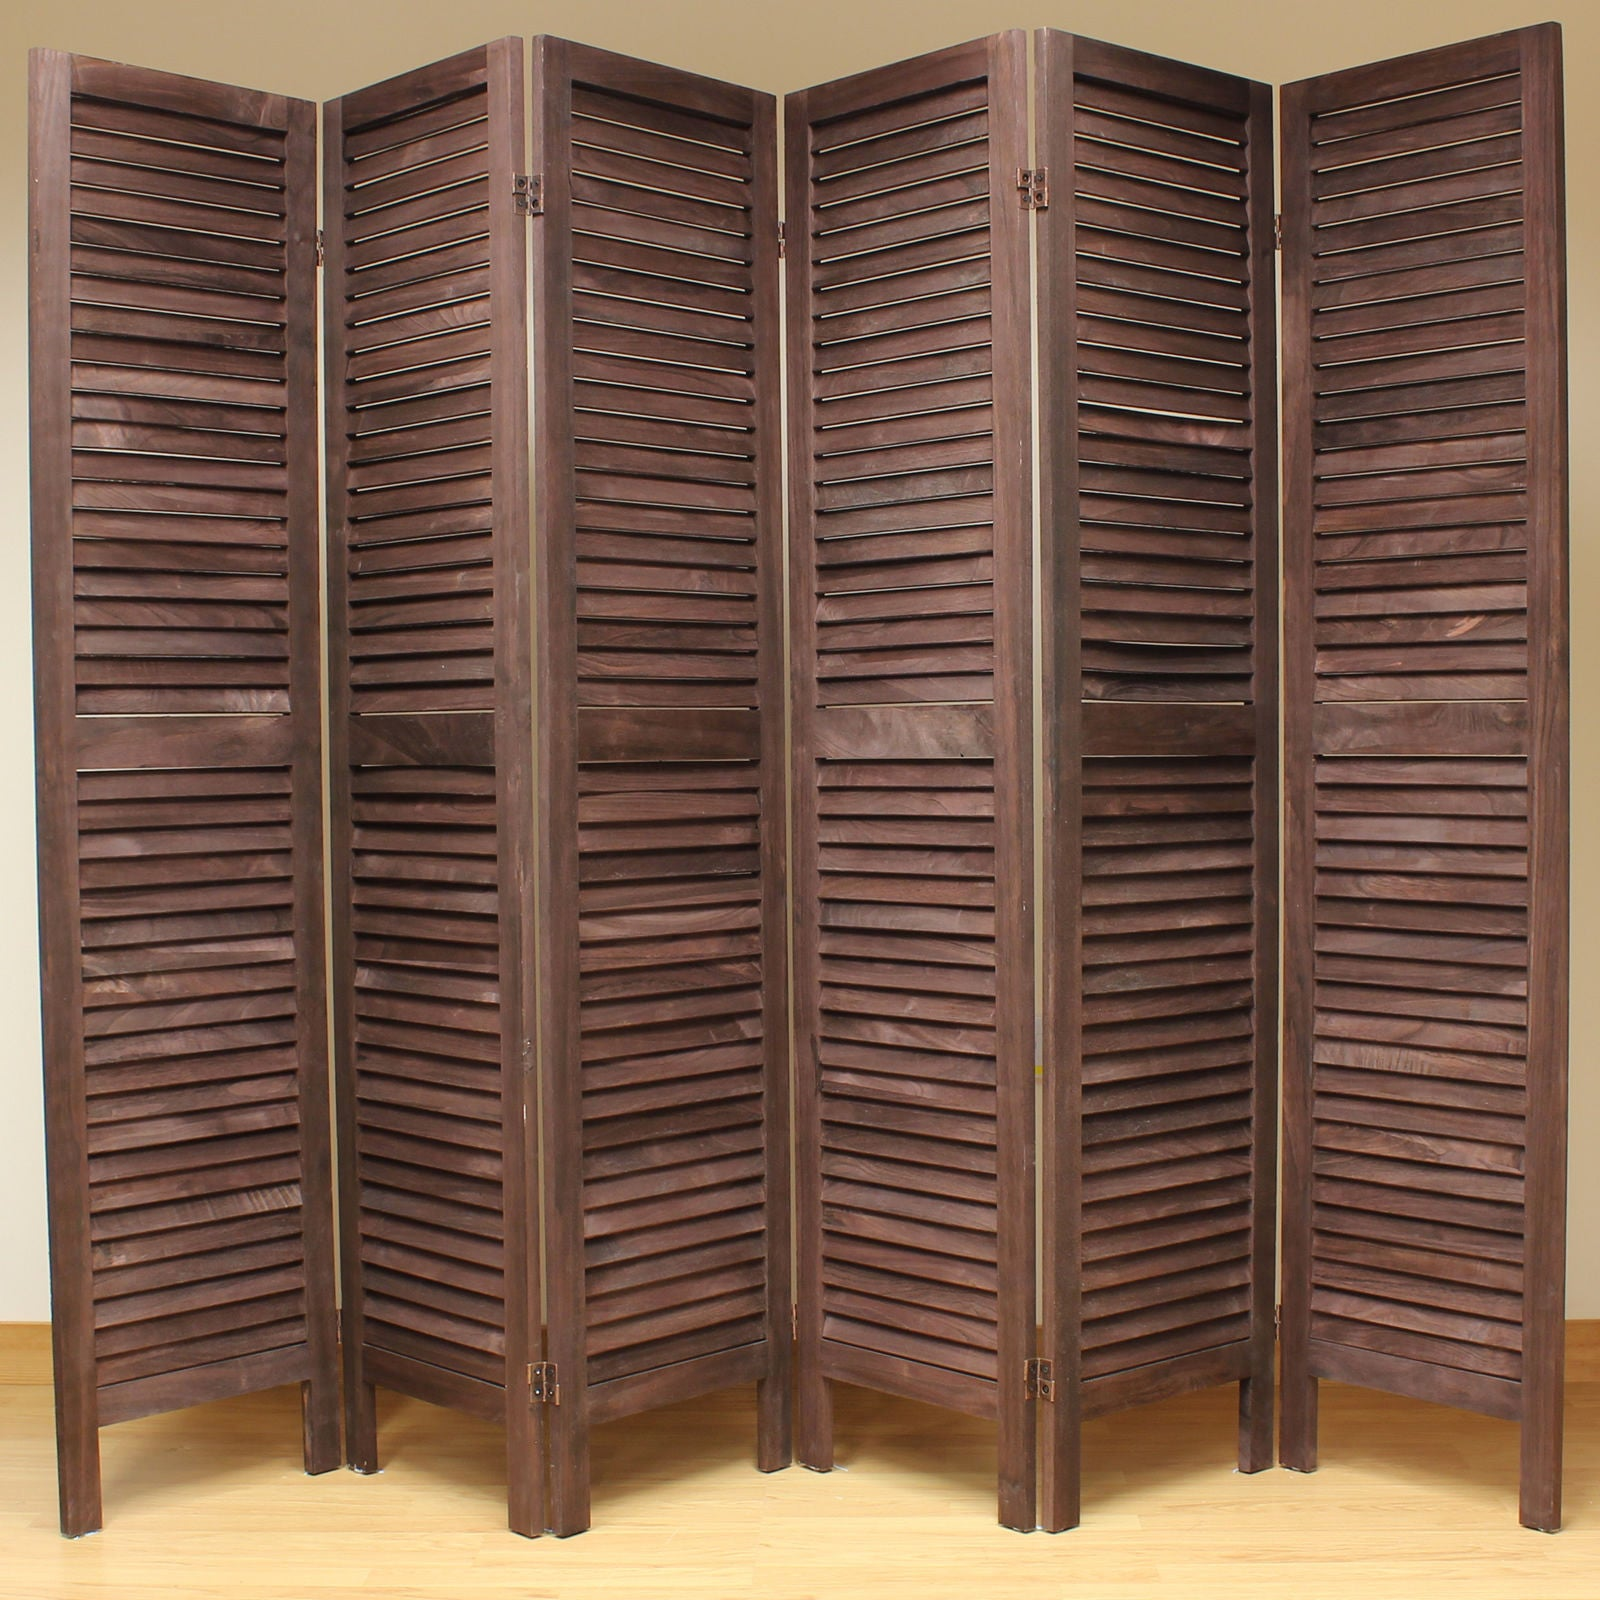 Low Room Divider Screens